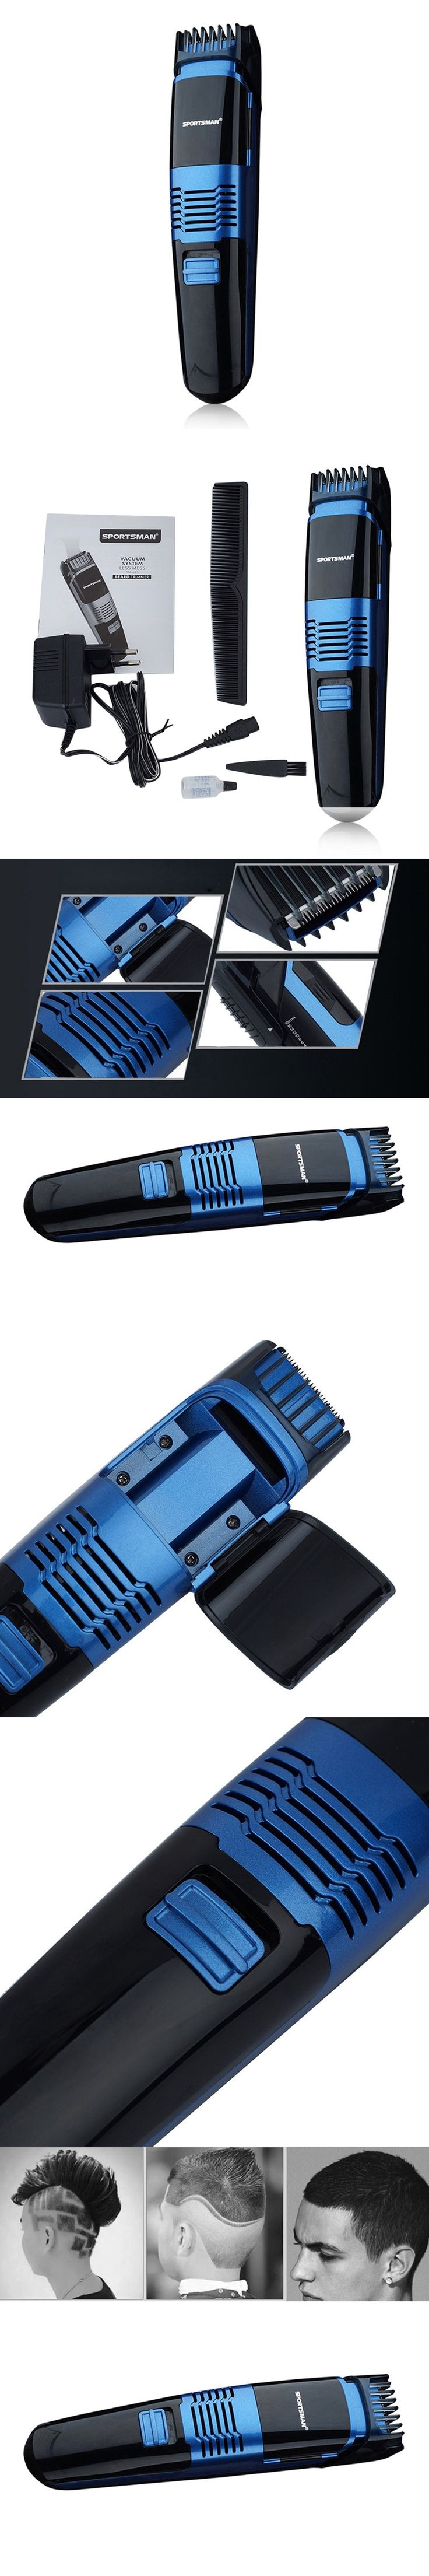 Multifunctional Electric Hair Trimmer Rechargeable Hair Clipper Haircut Beard Trimmer Razor for Adult Men LED Display Hot Sale